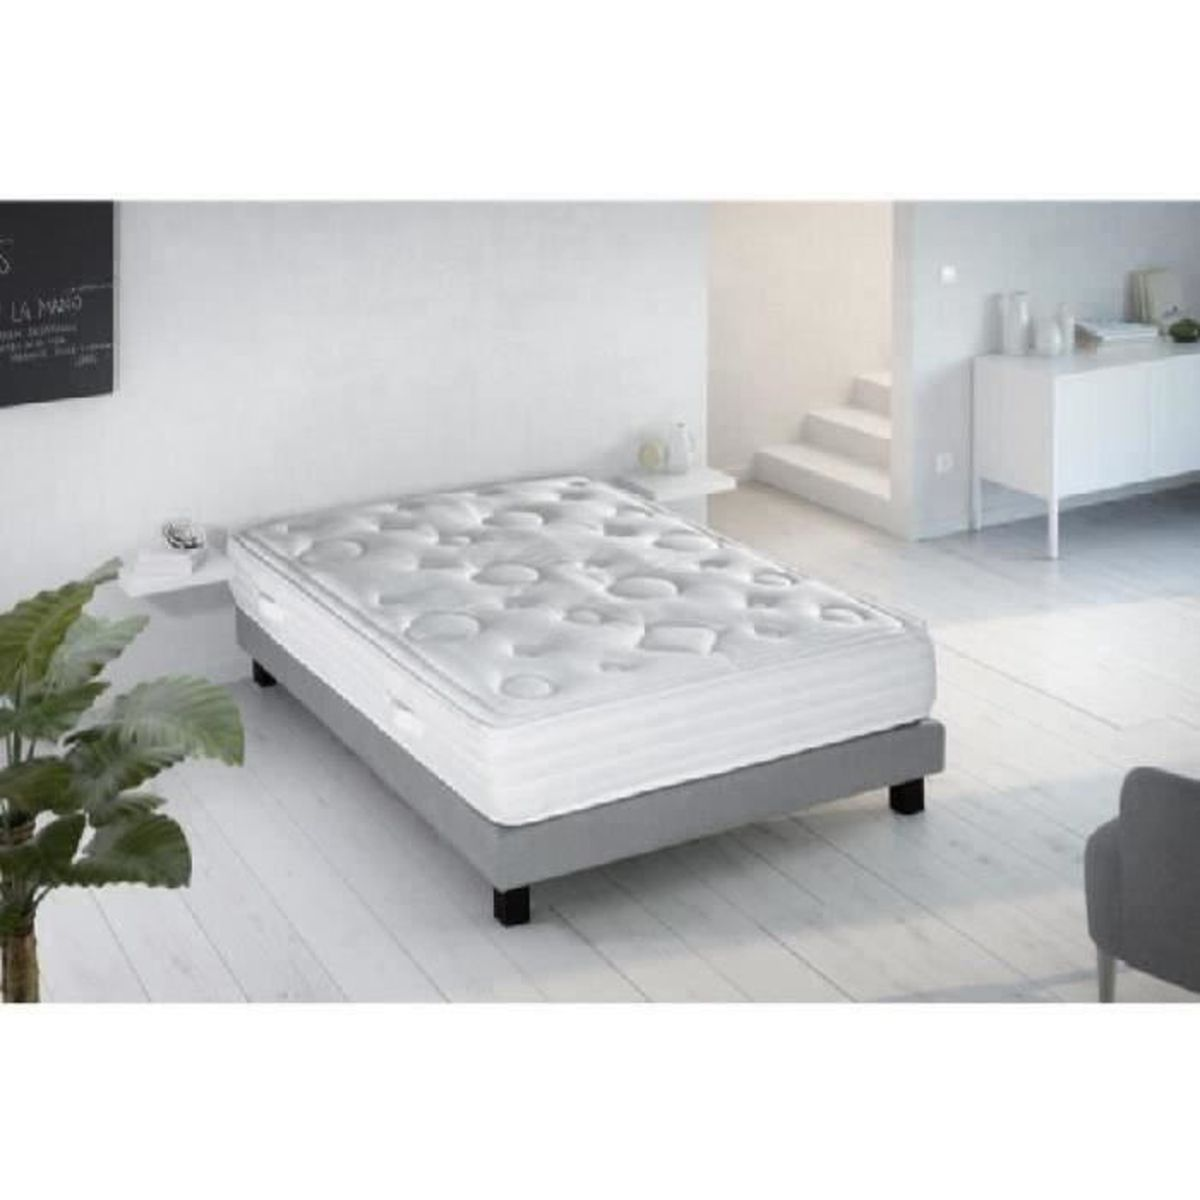 matelas merinos carpe diem 160x200 matelas ressorts x cm merinos comics vente de merinos. Black Bedroom Furniture Sets. Home Design Ideas